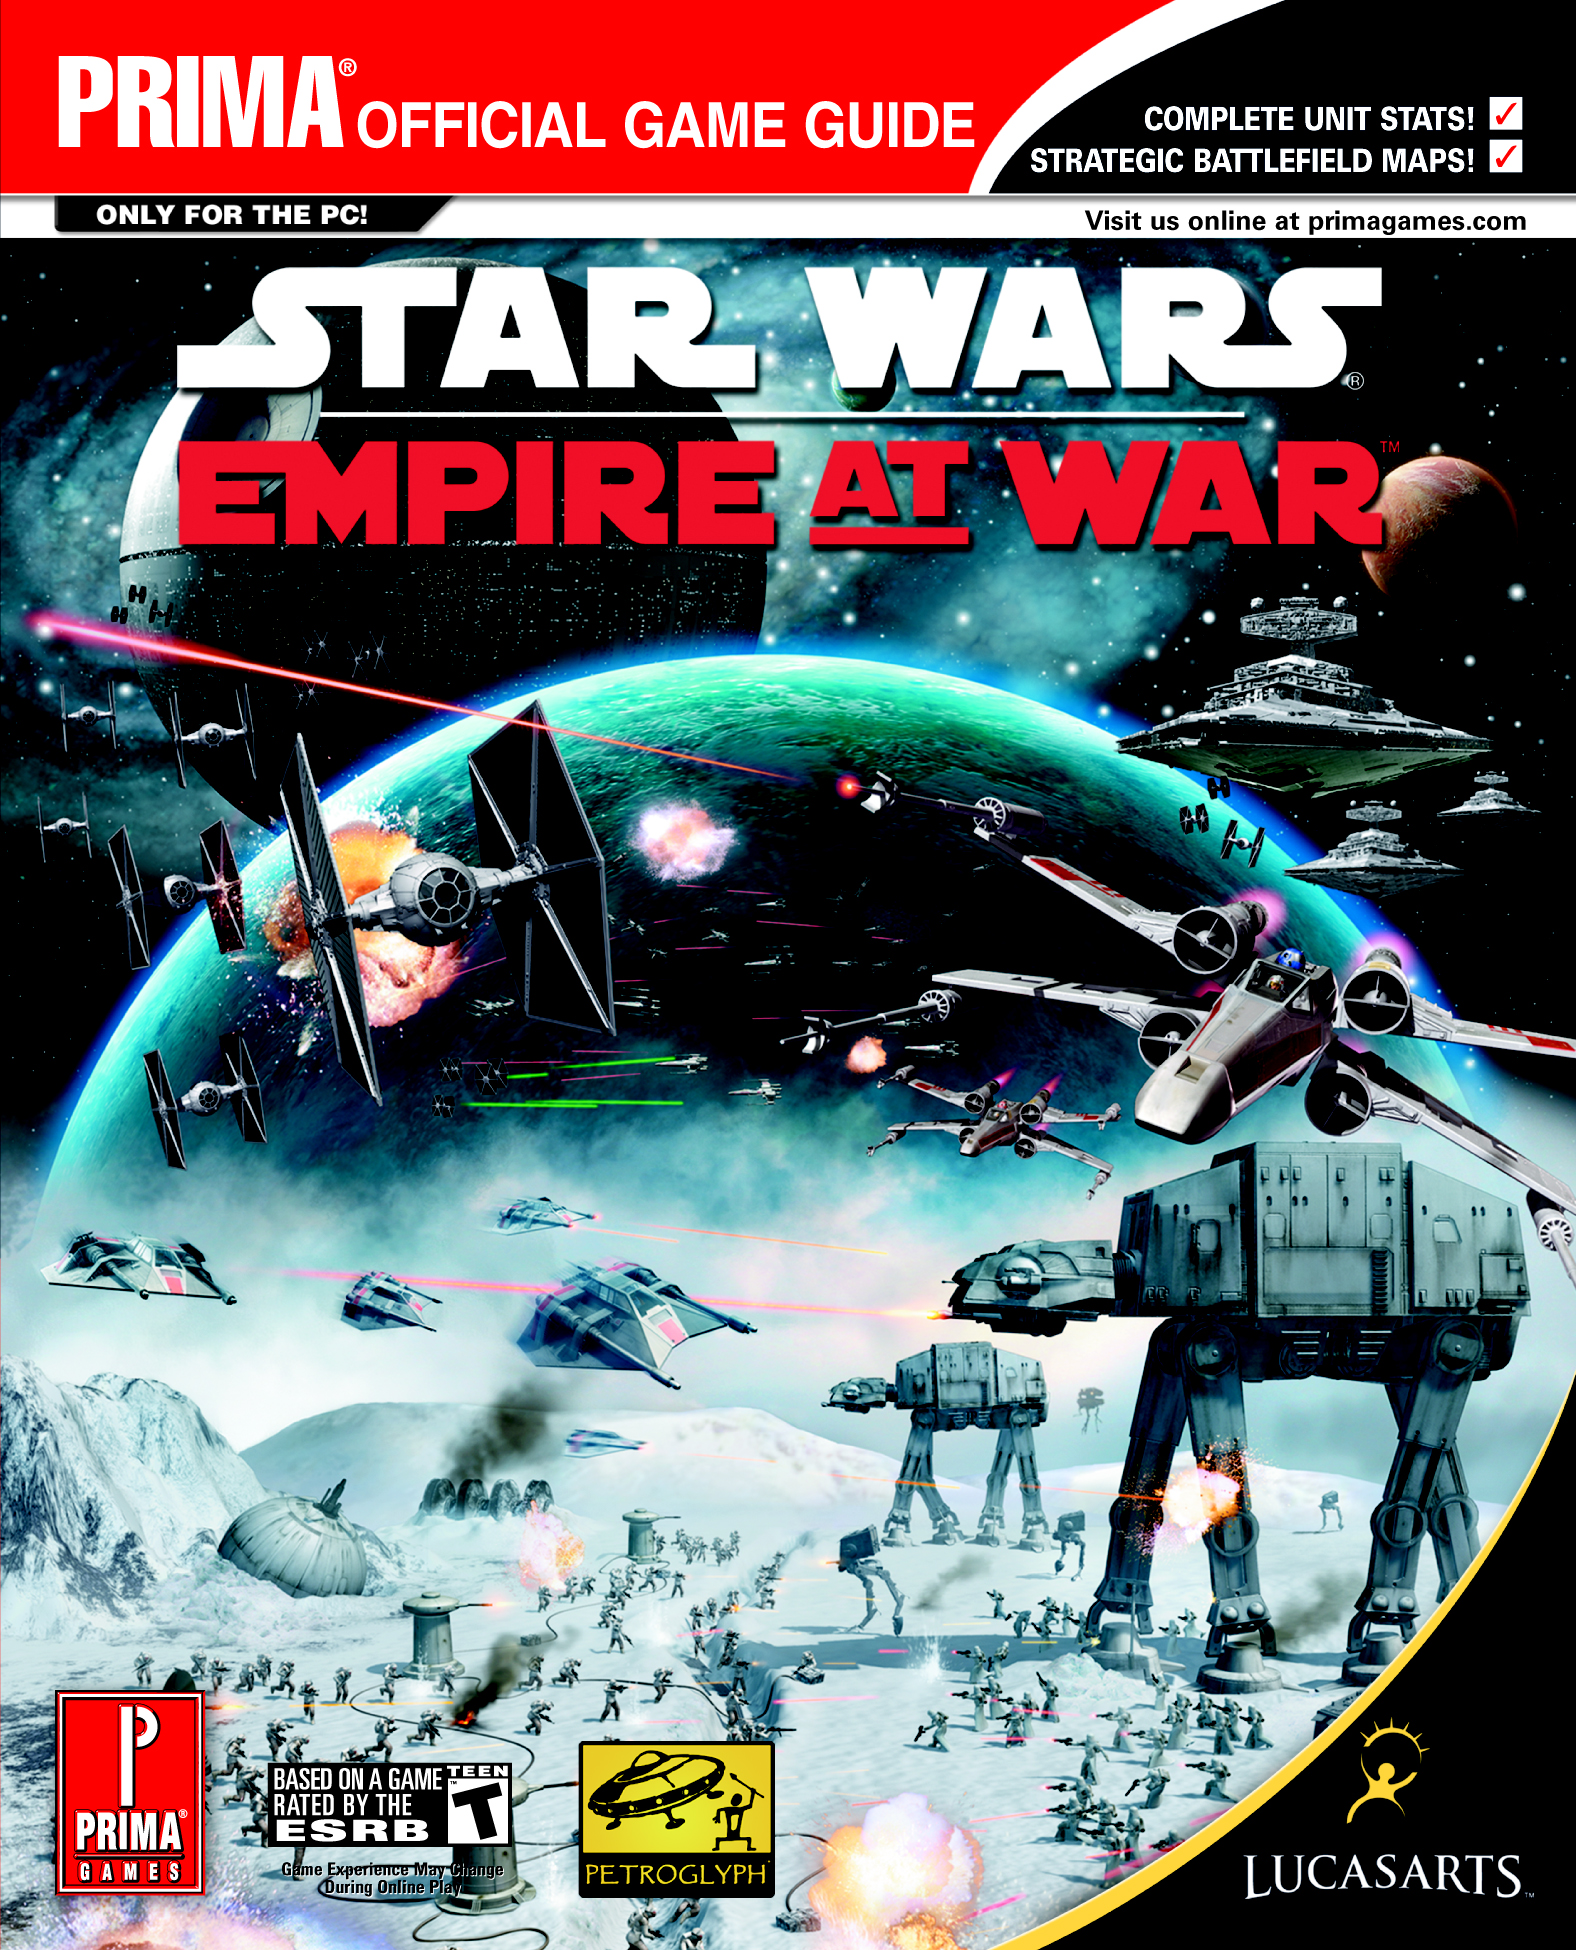 Star Wars: Empire at War: Prima Official Game Guide